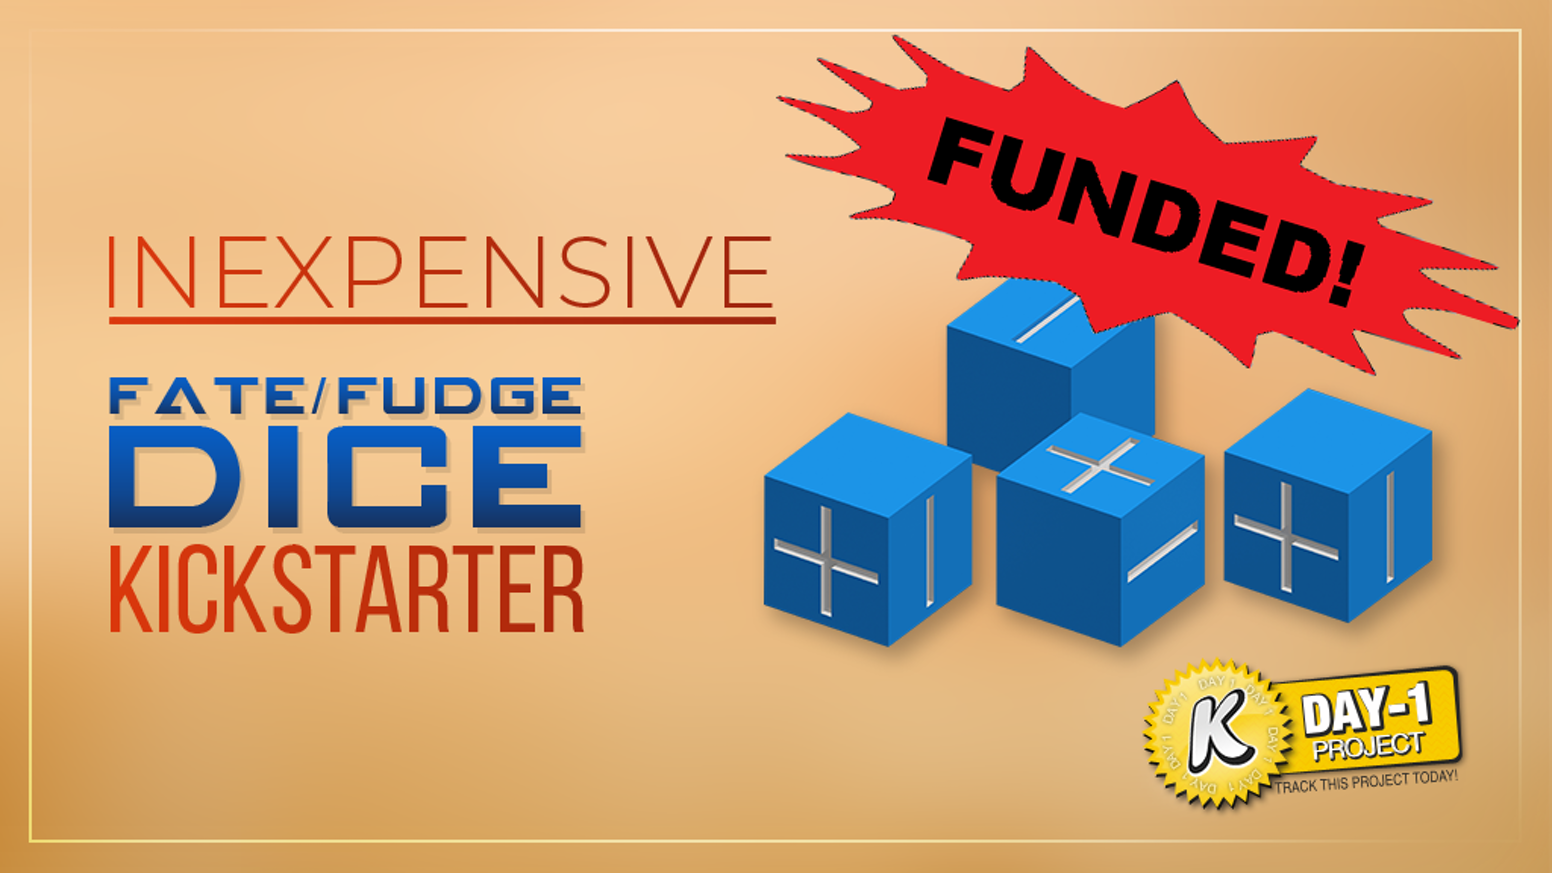 The goal of this Kickstarter is to provide you with inexpensive fate / fudge dice.